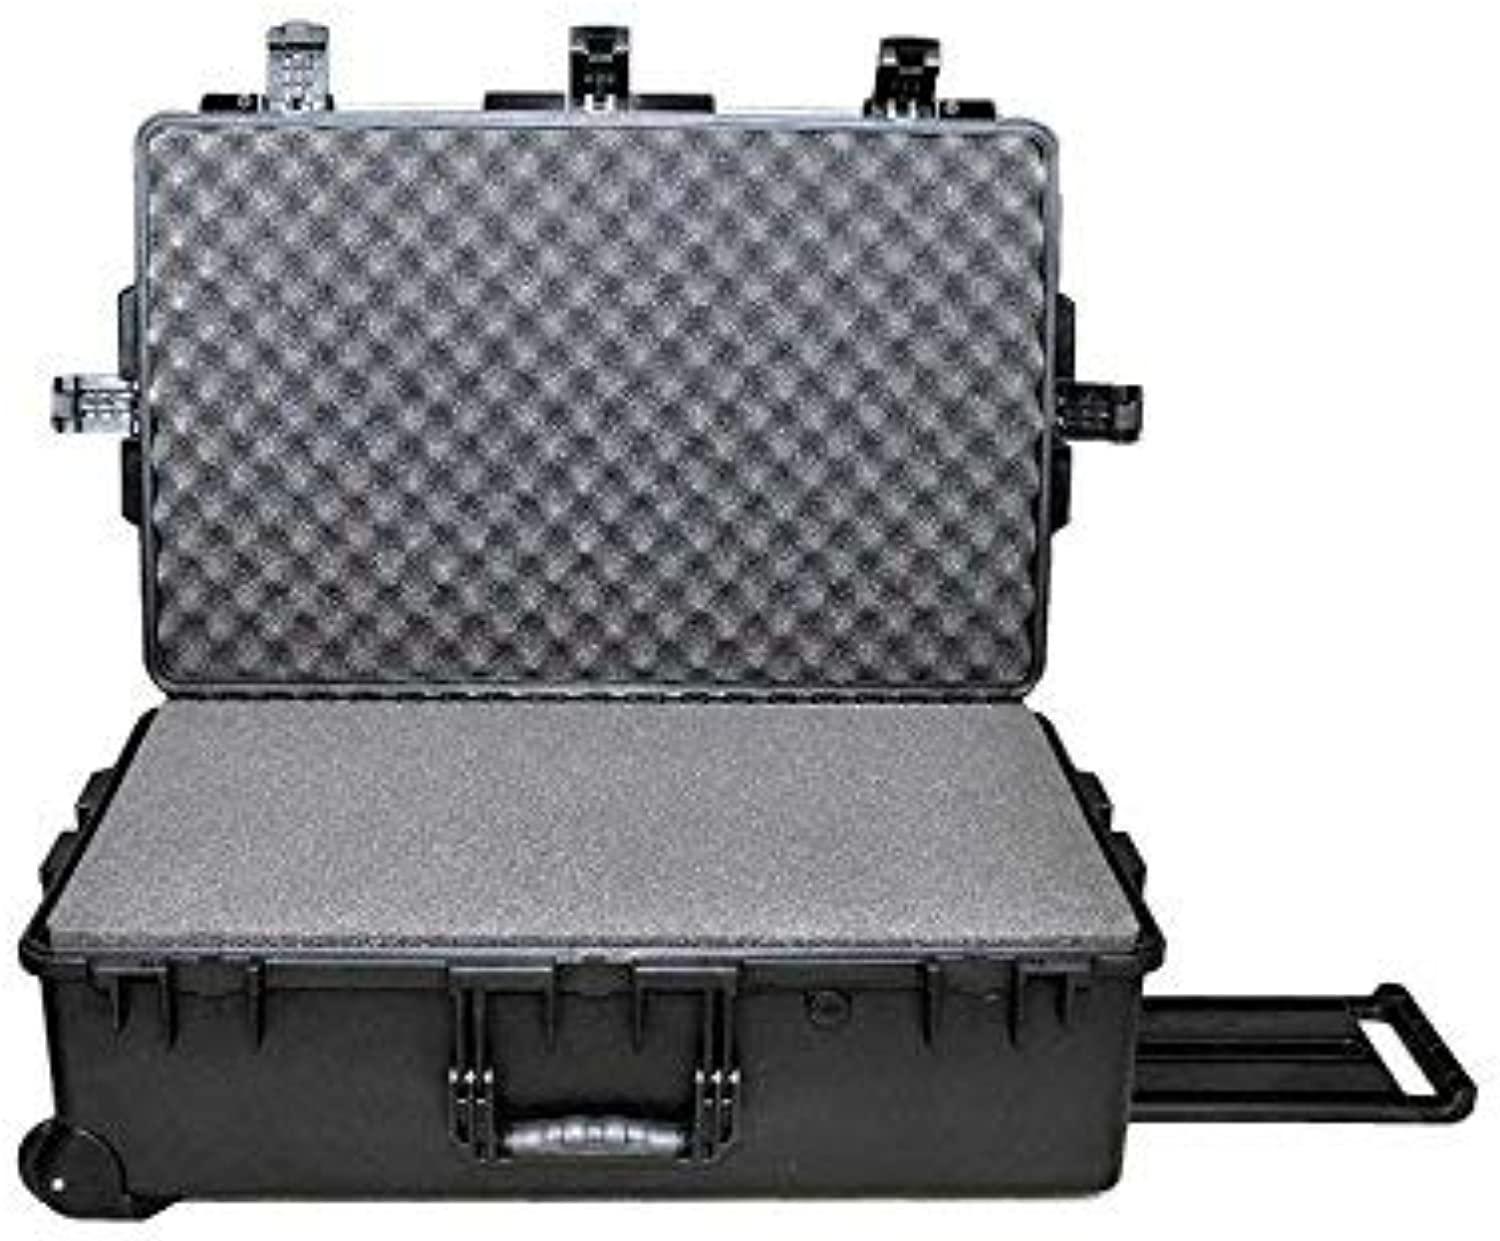 Tricase M2950 Plastic   trolley  tool box organizer Waterproof heavy duty tool box